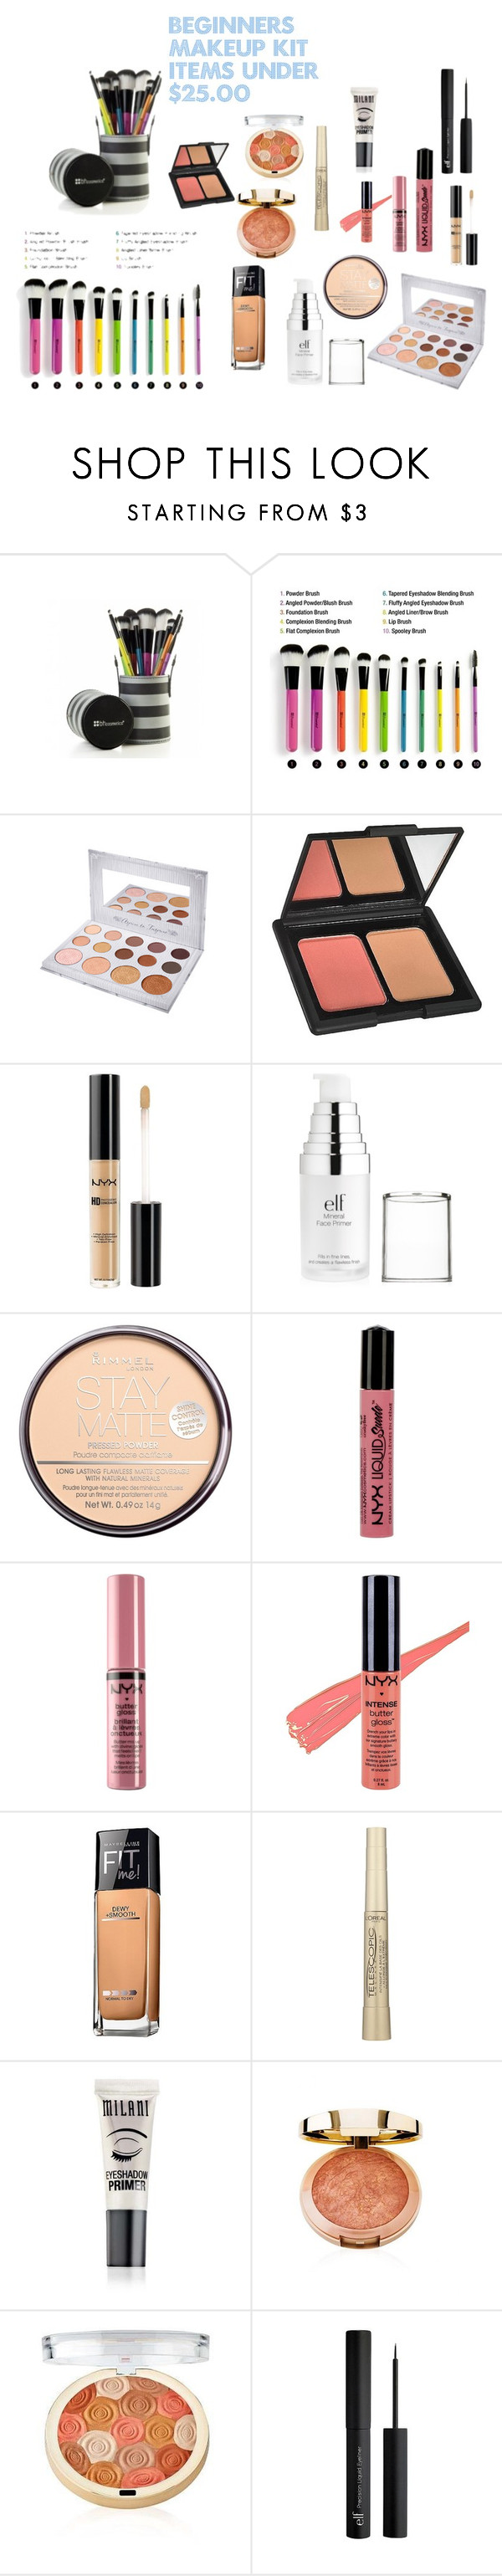 """""""beginners makeup kit items under 25"""" by ladyolivia721 on"""